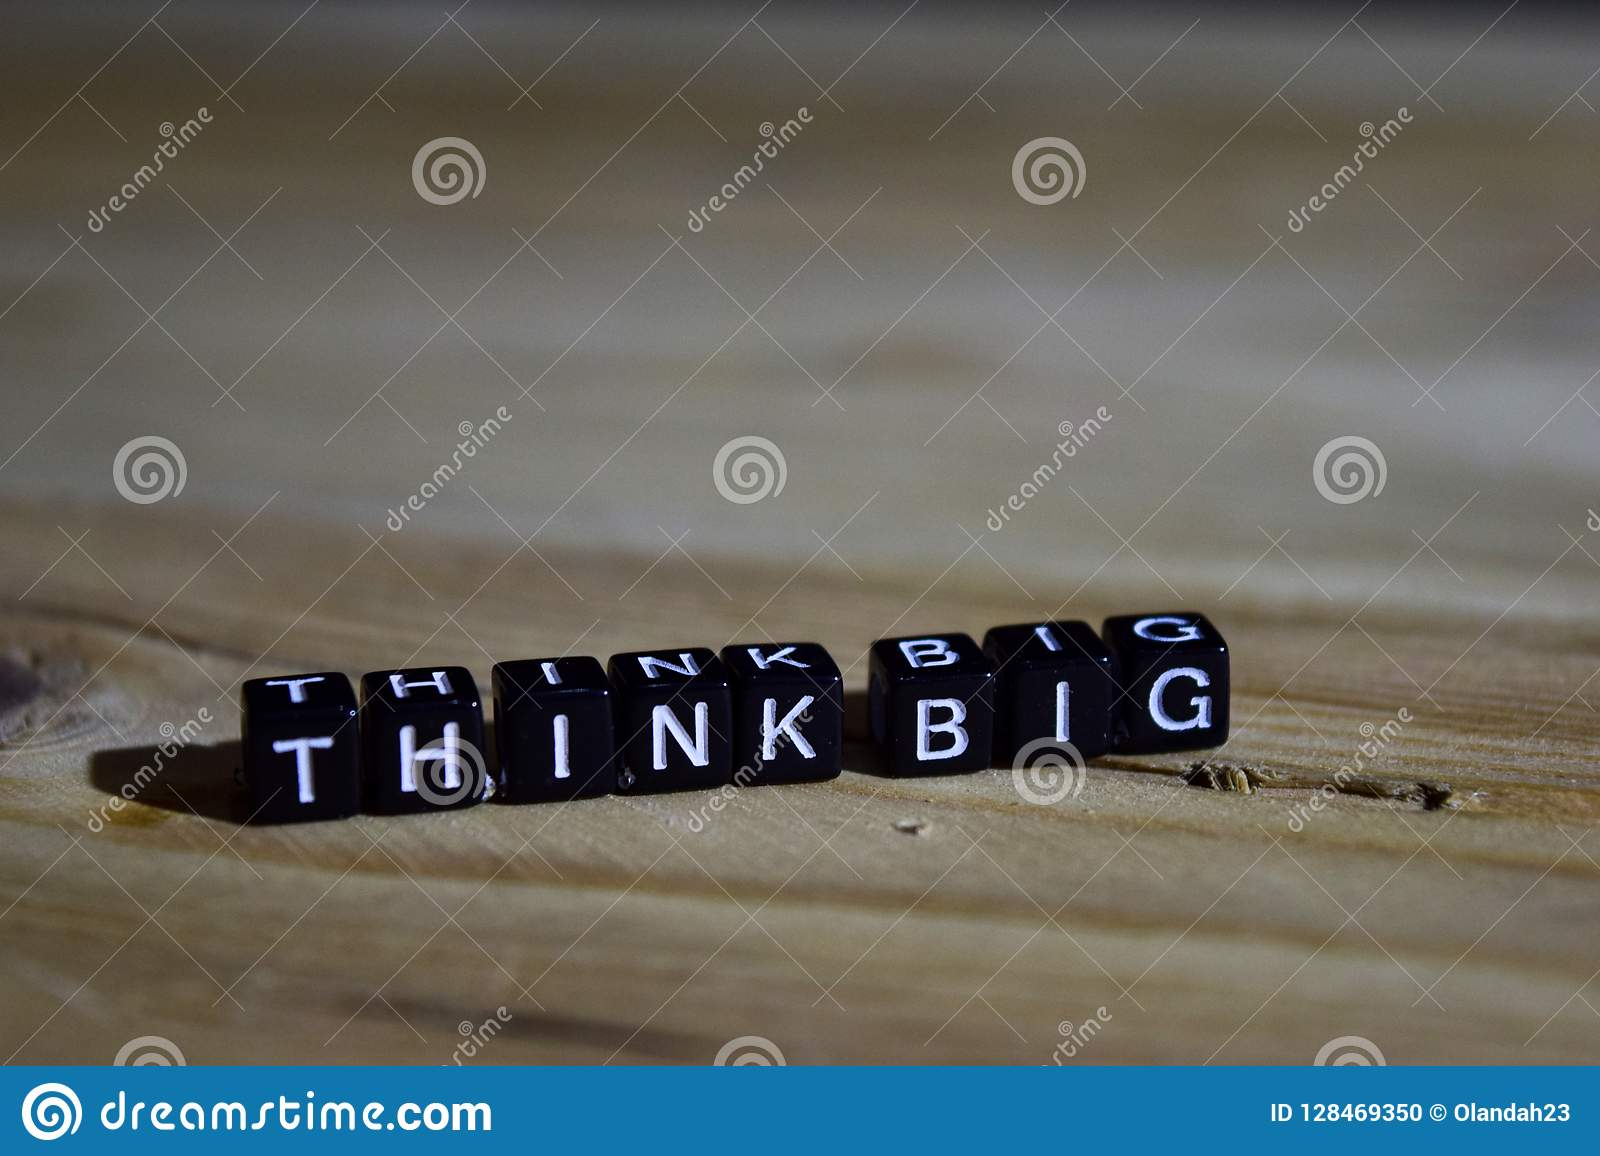 Think big on wooden blocks. Motivation and inspiration concept